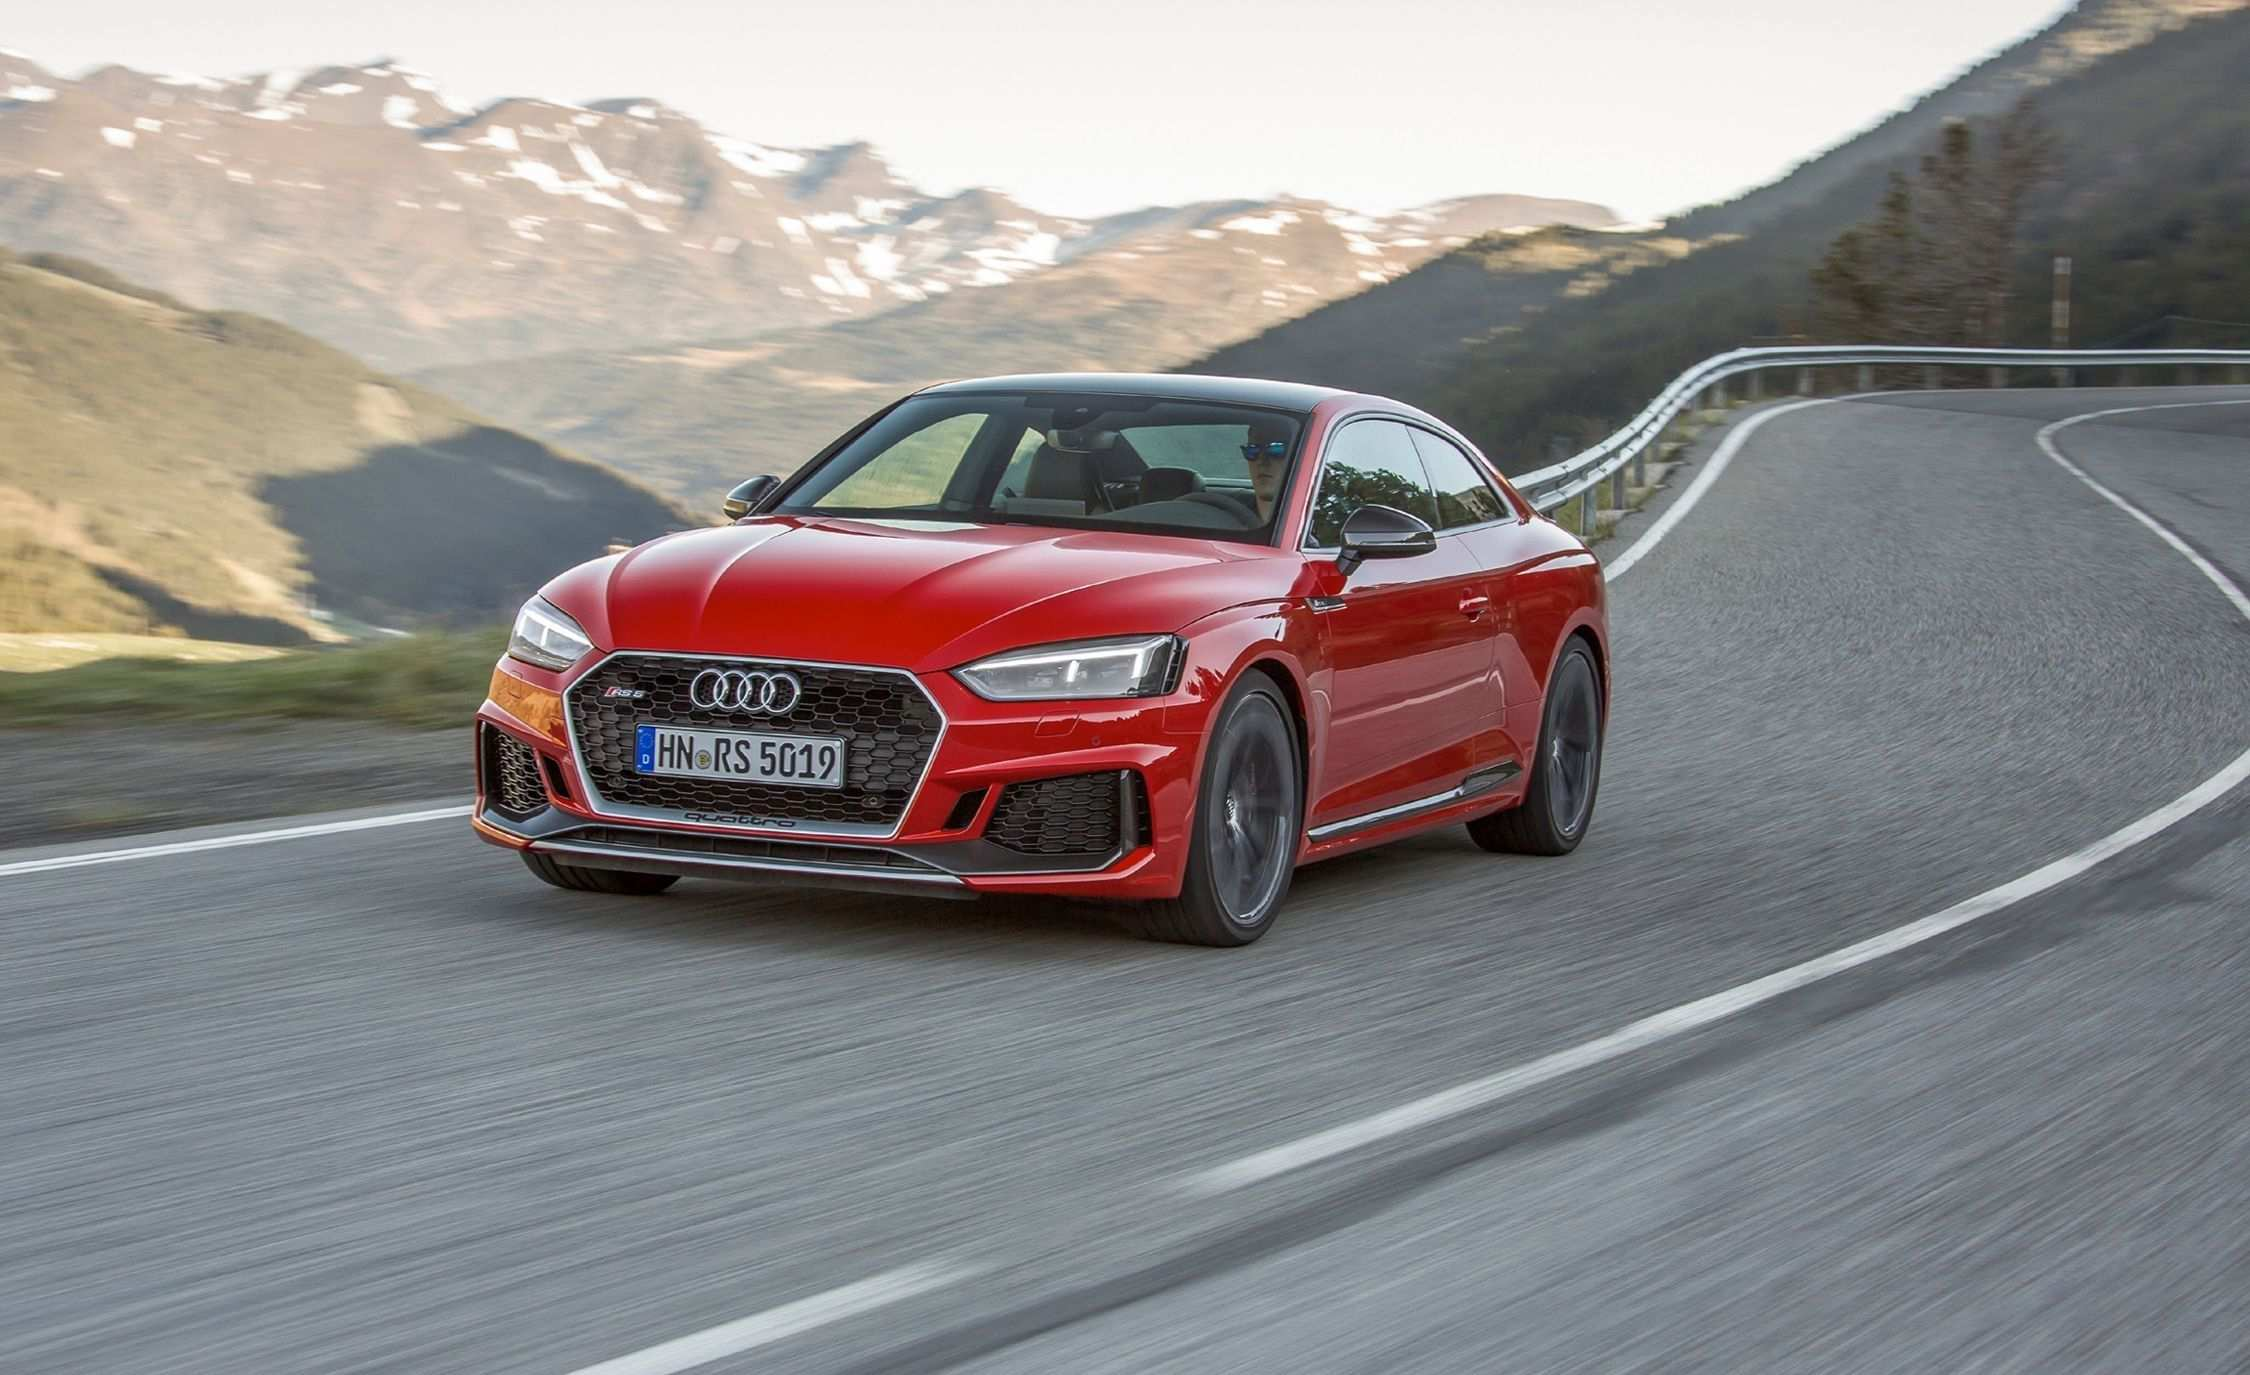 87 Best Review 2020 Audi Rs5 Tdi Pricing by 2020 Audi Rs5 Tdi